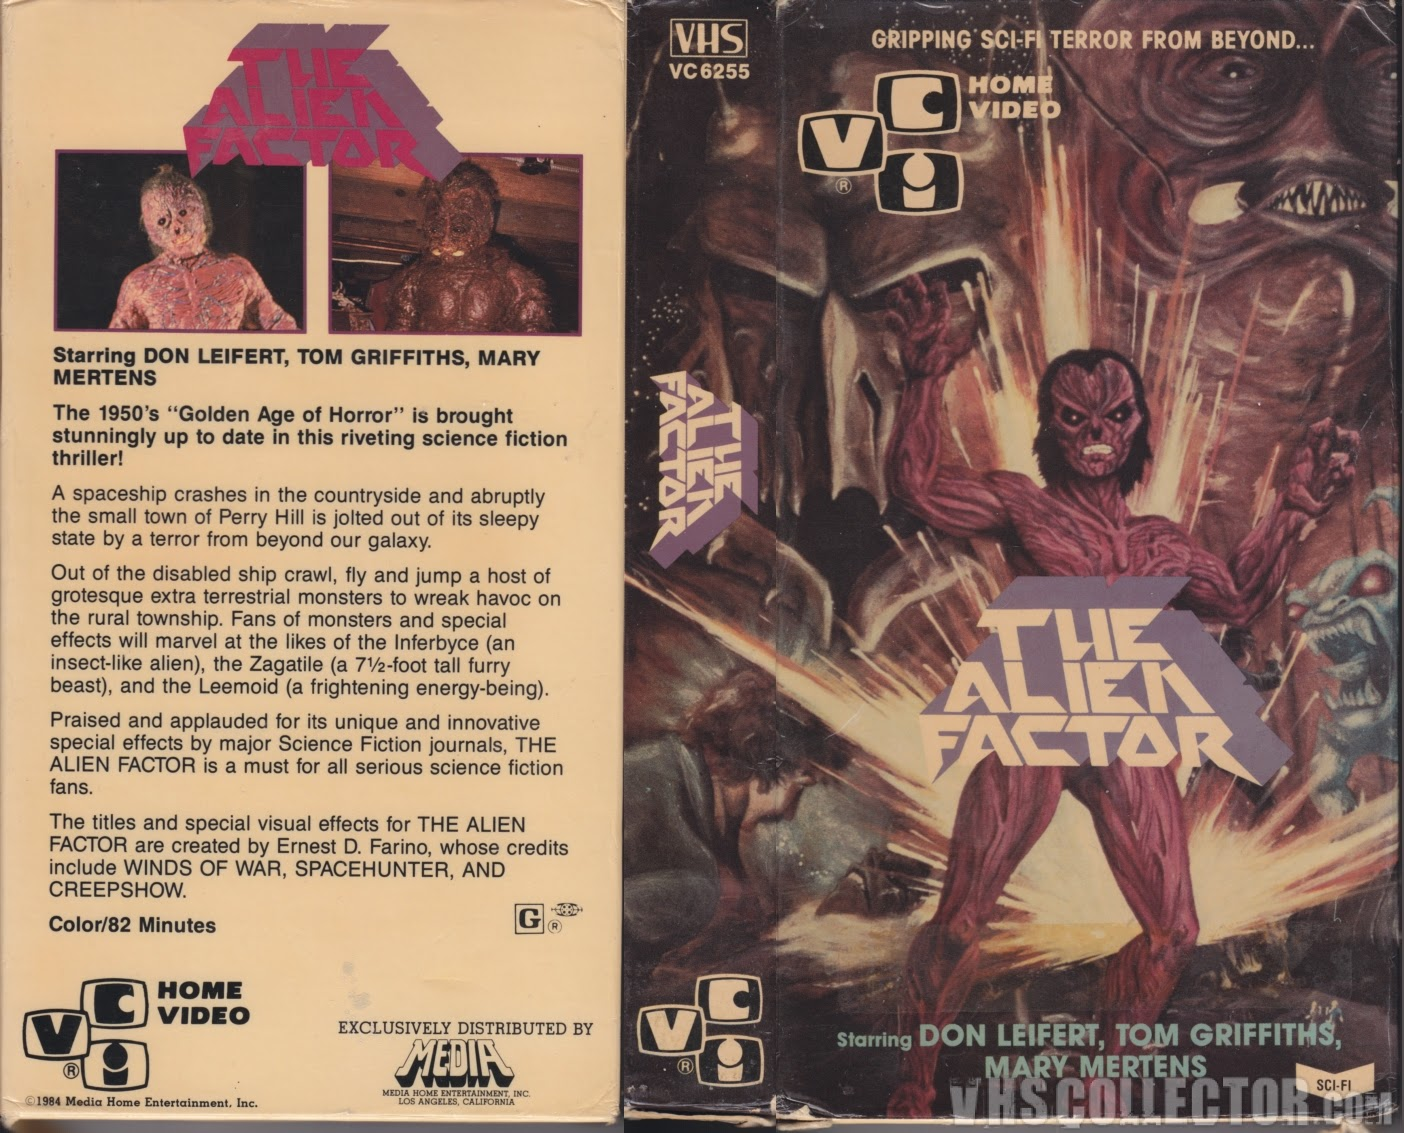 The Alien Factor VHS cover